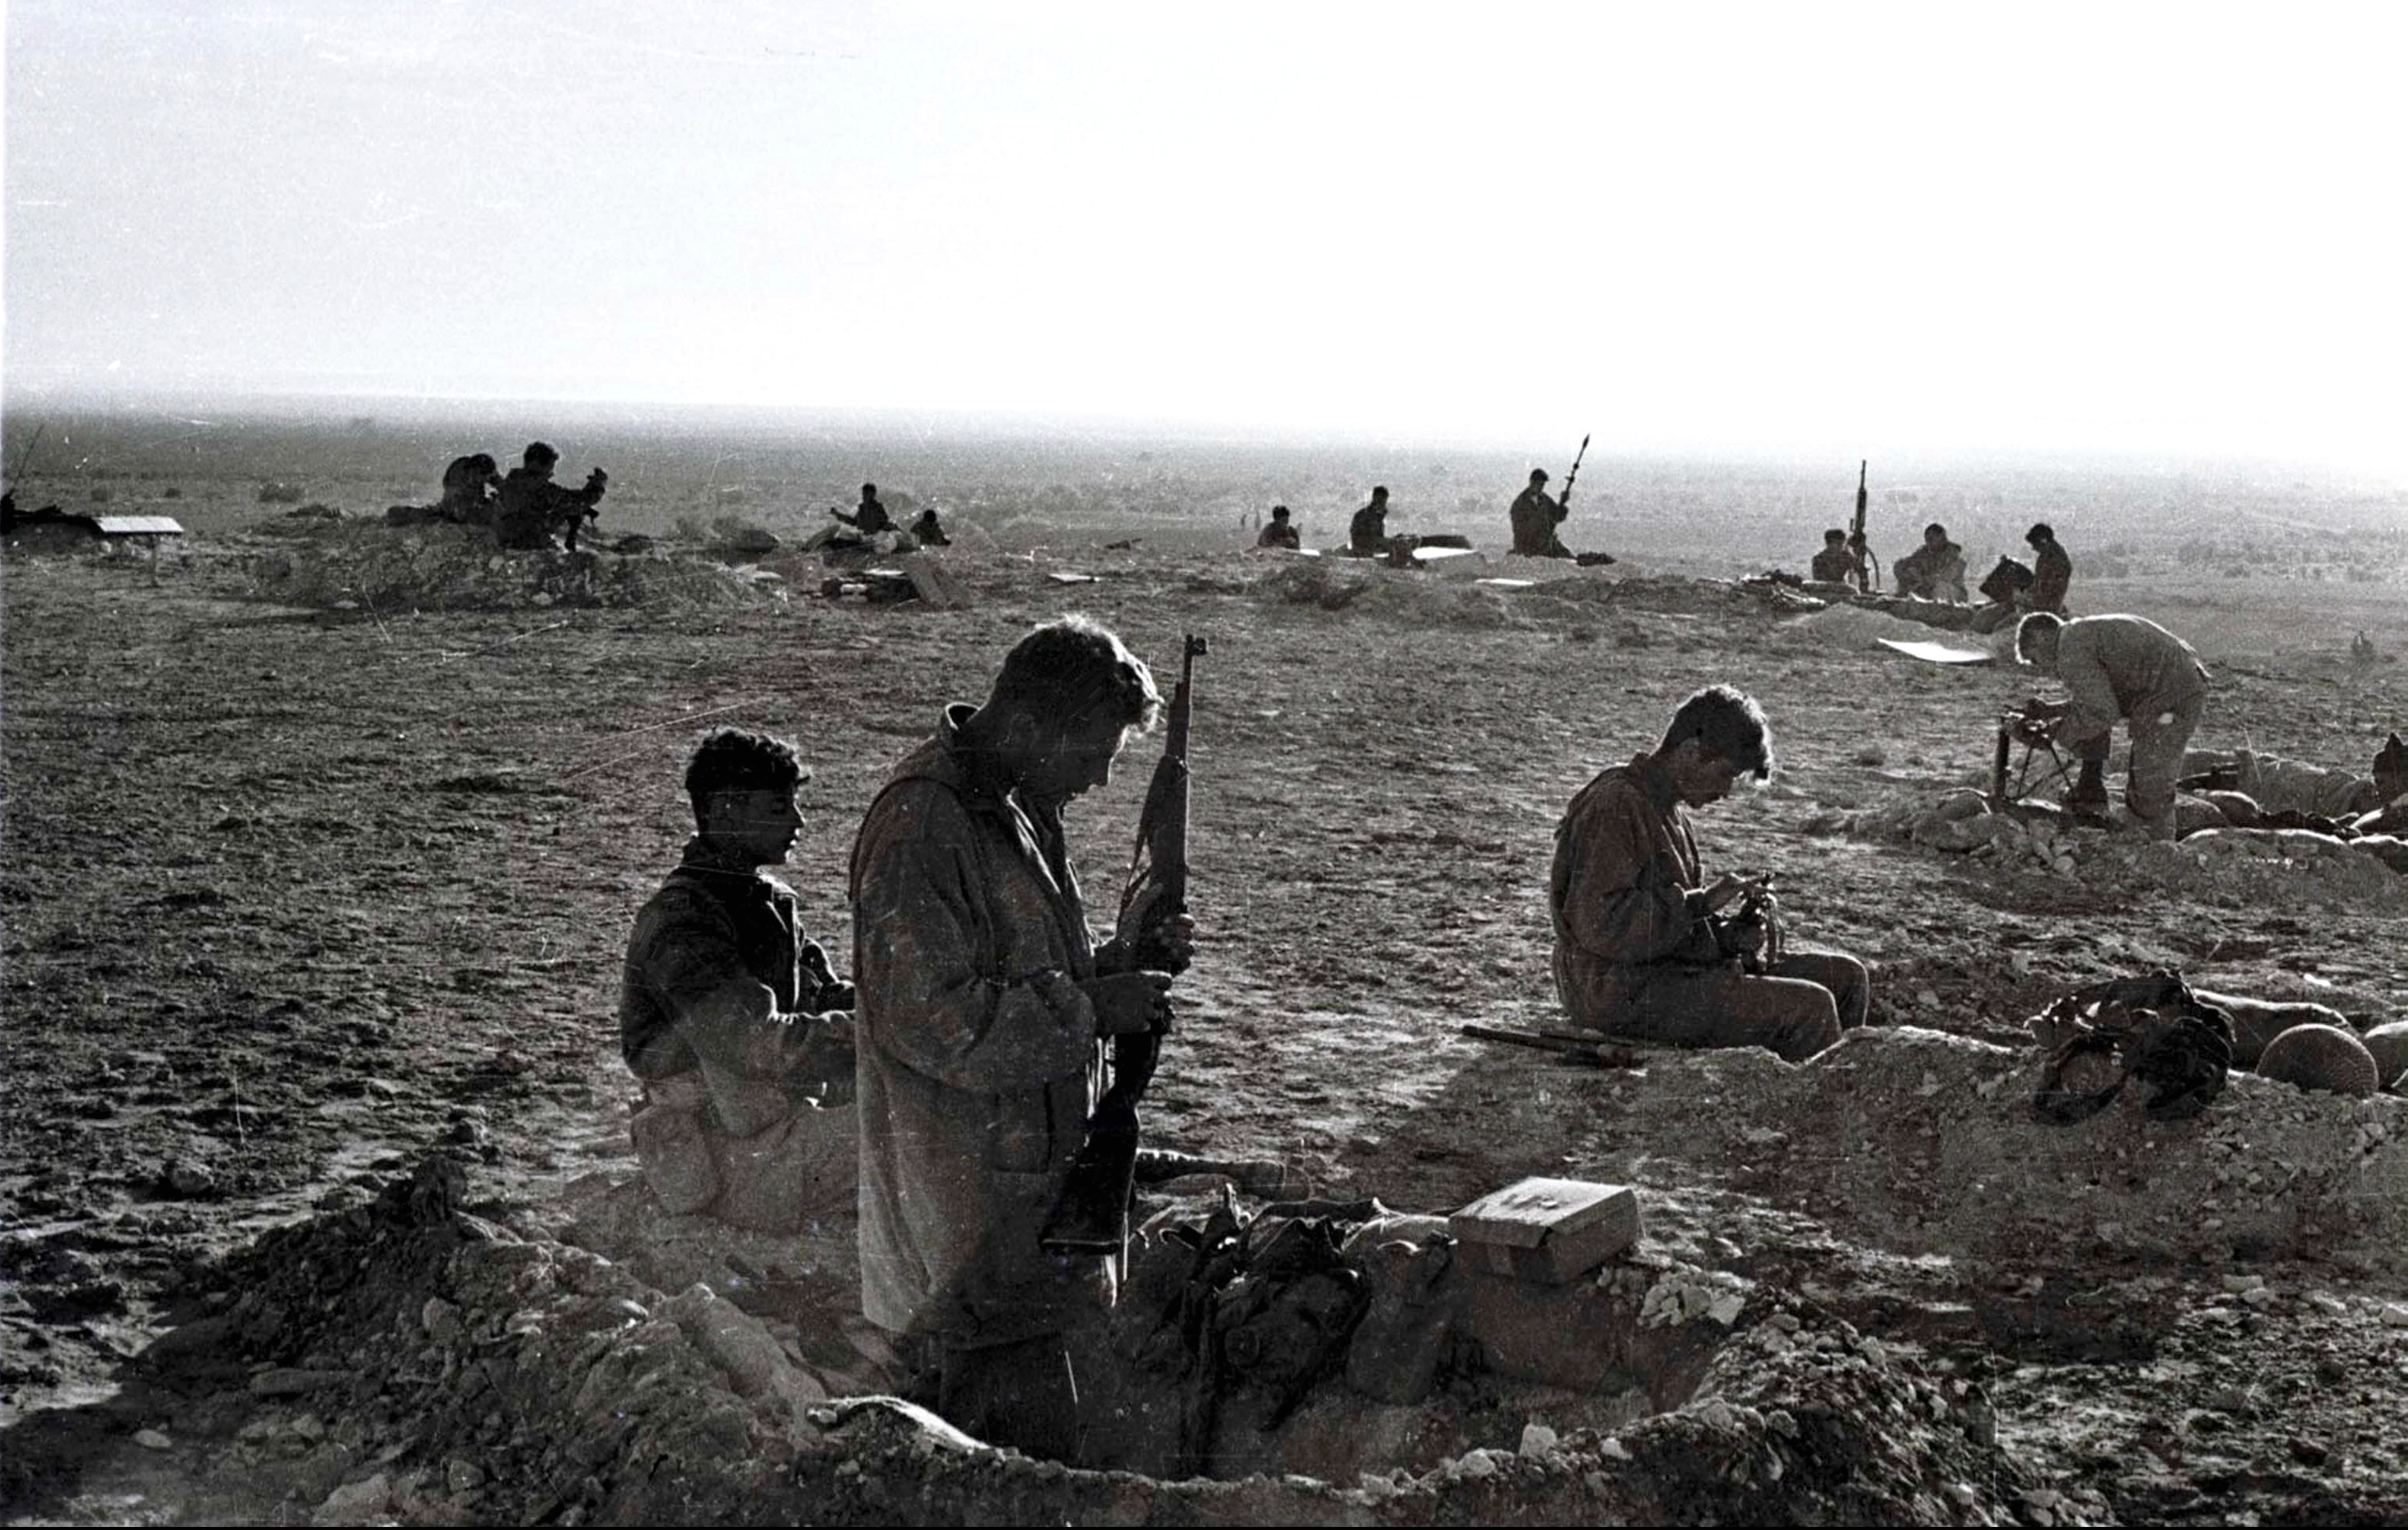 File:Israeli troops in sinai war.jpg